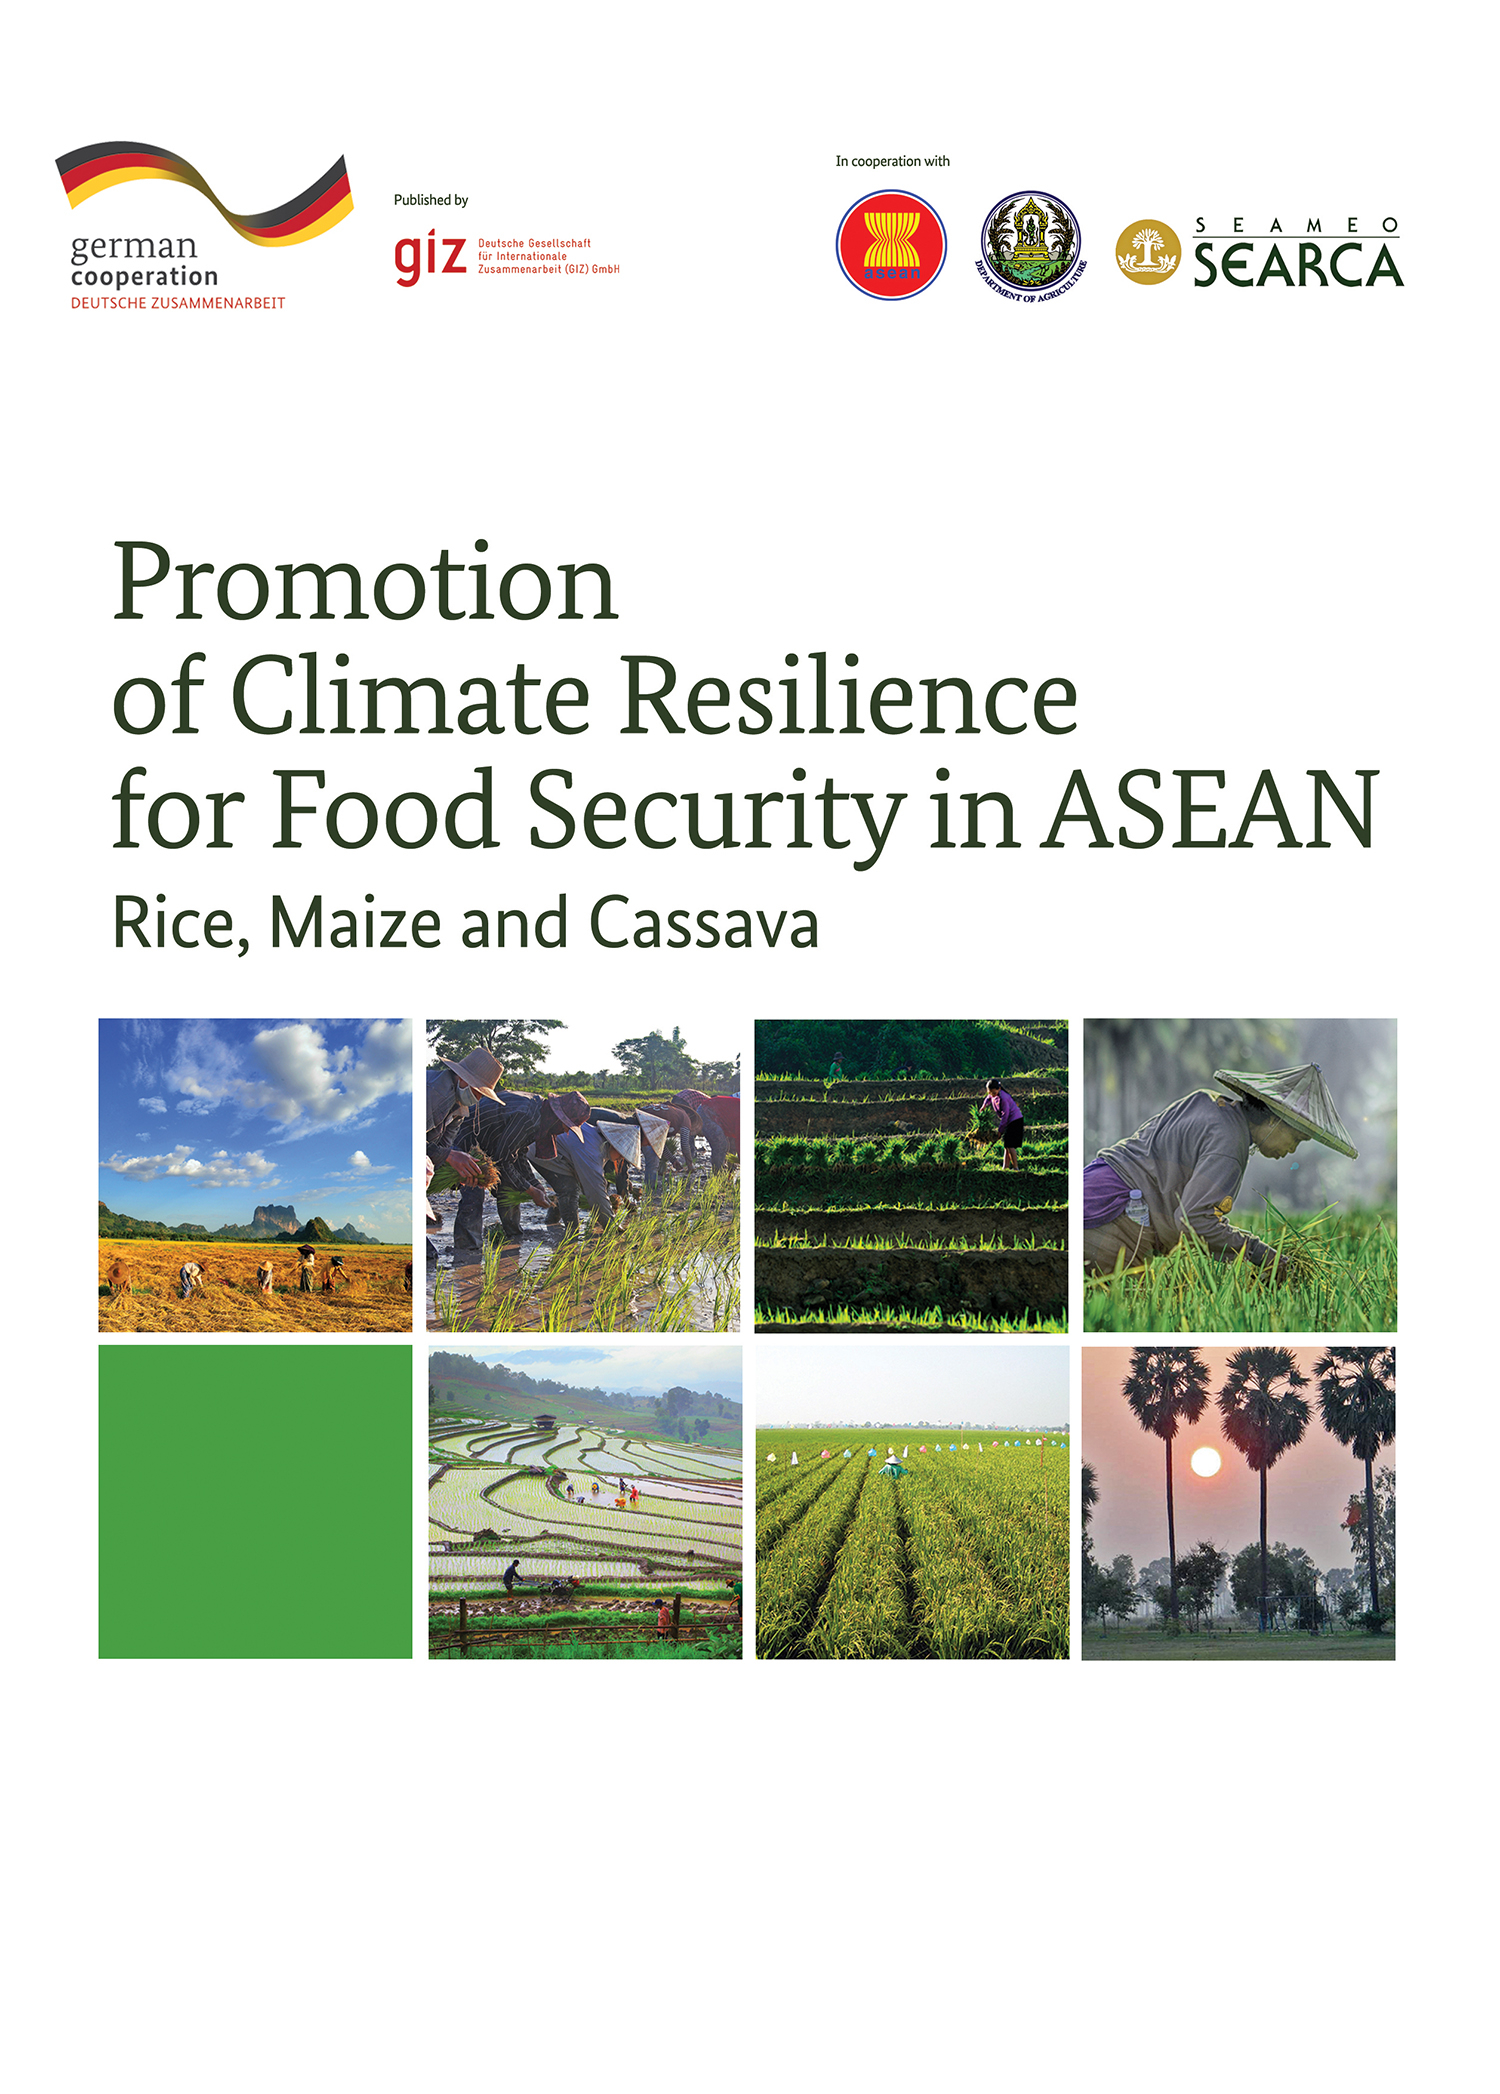 Climate resilience for food security in ASEAN